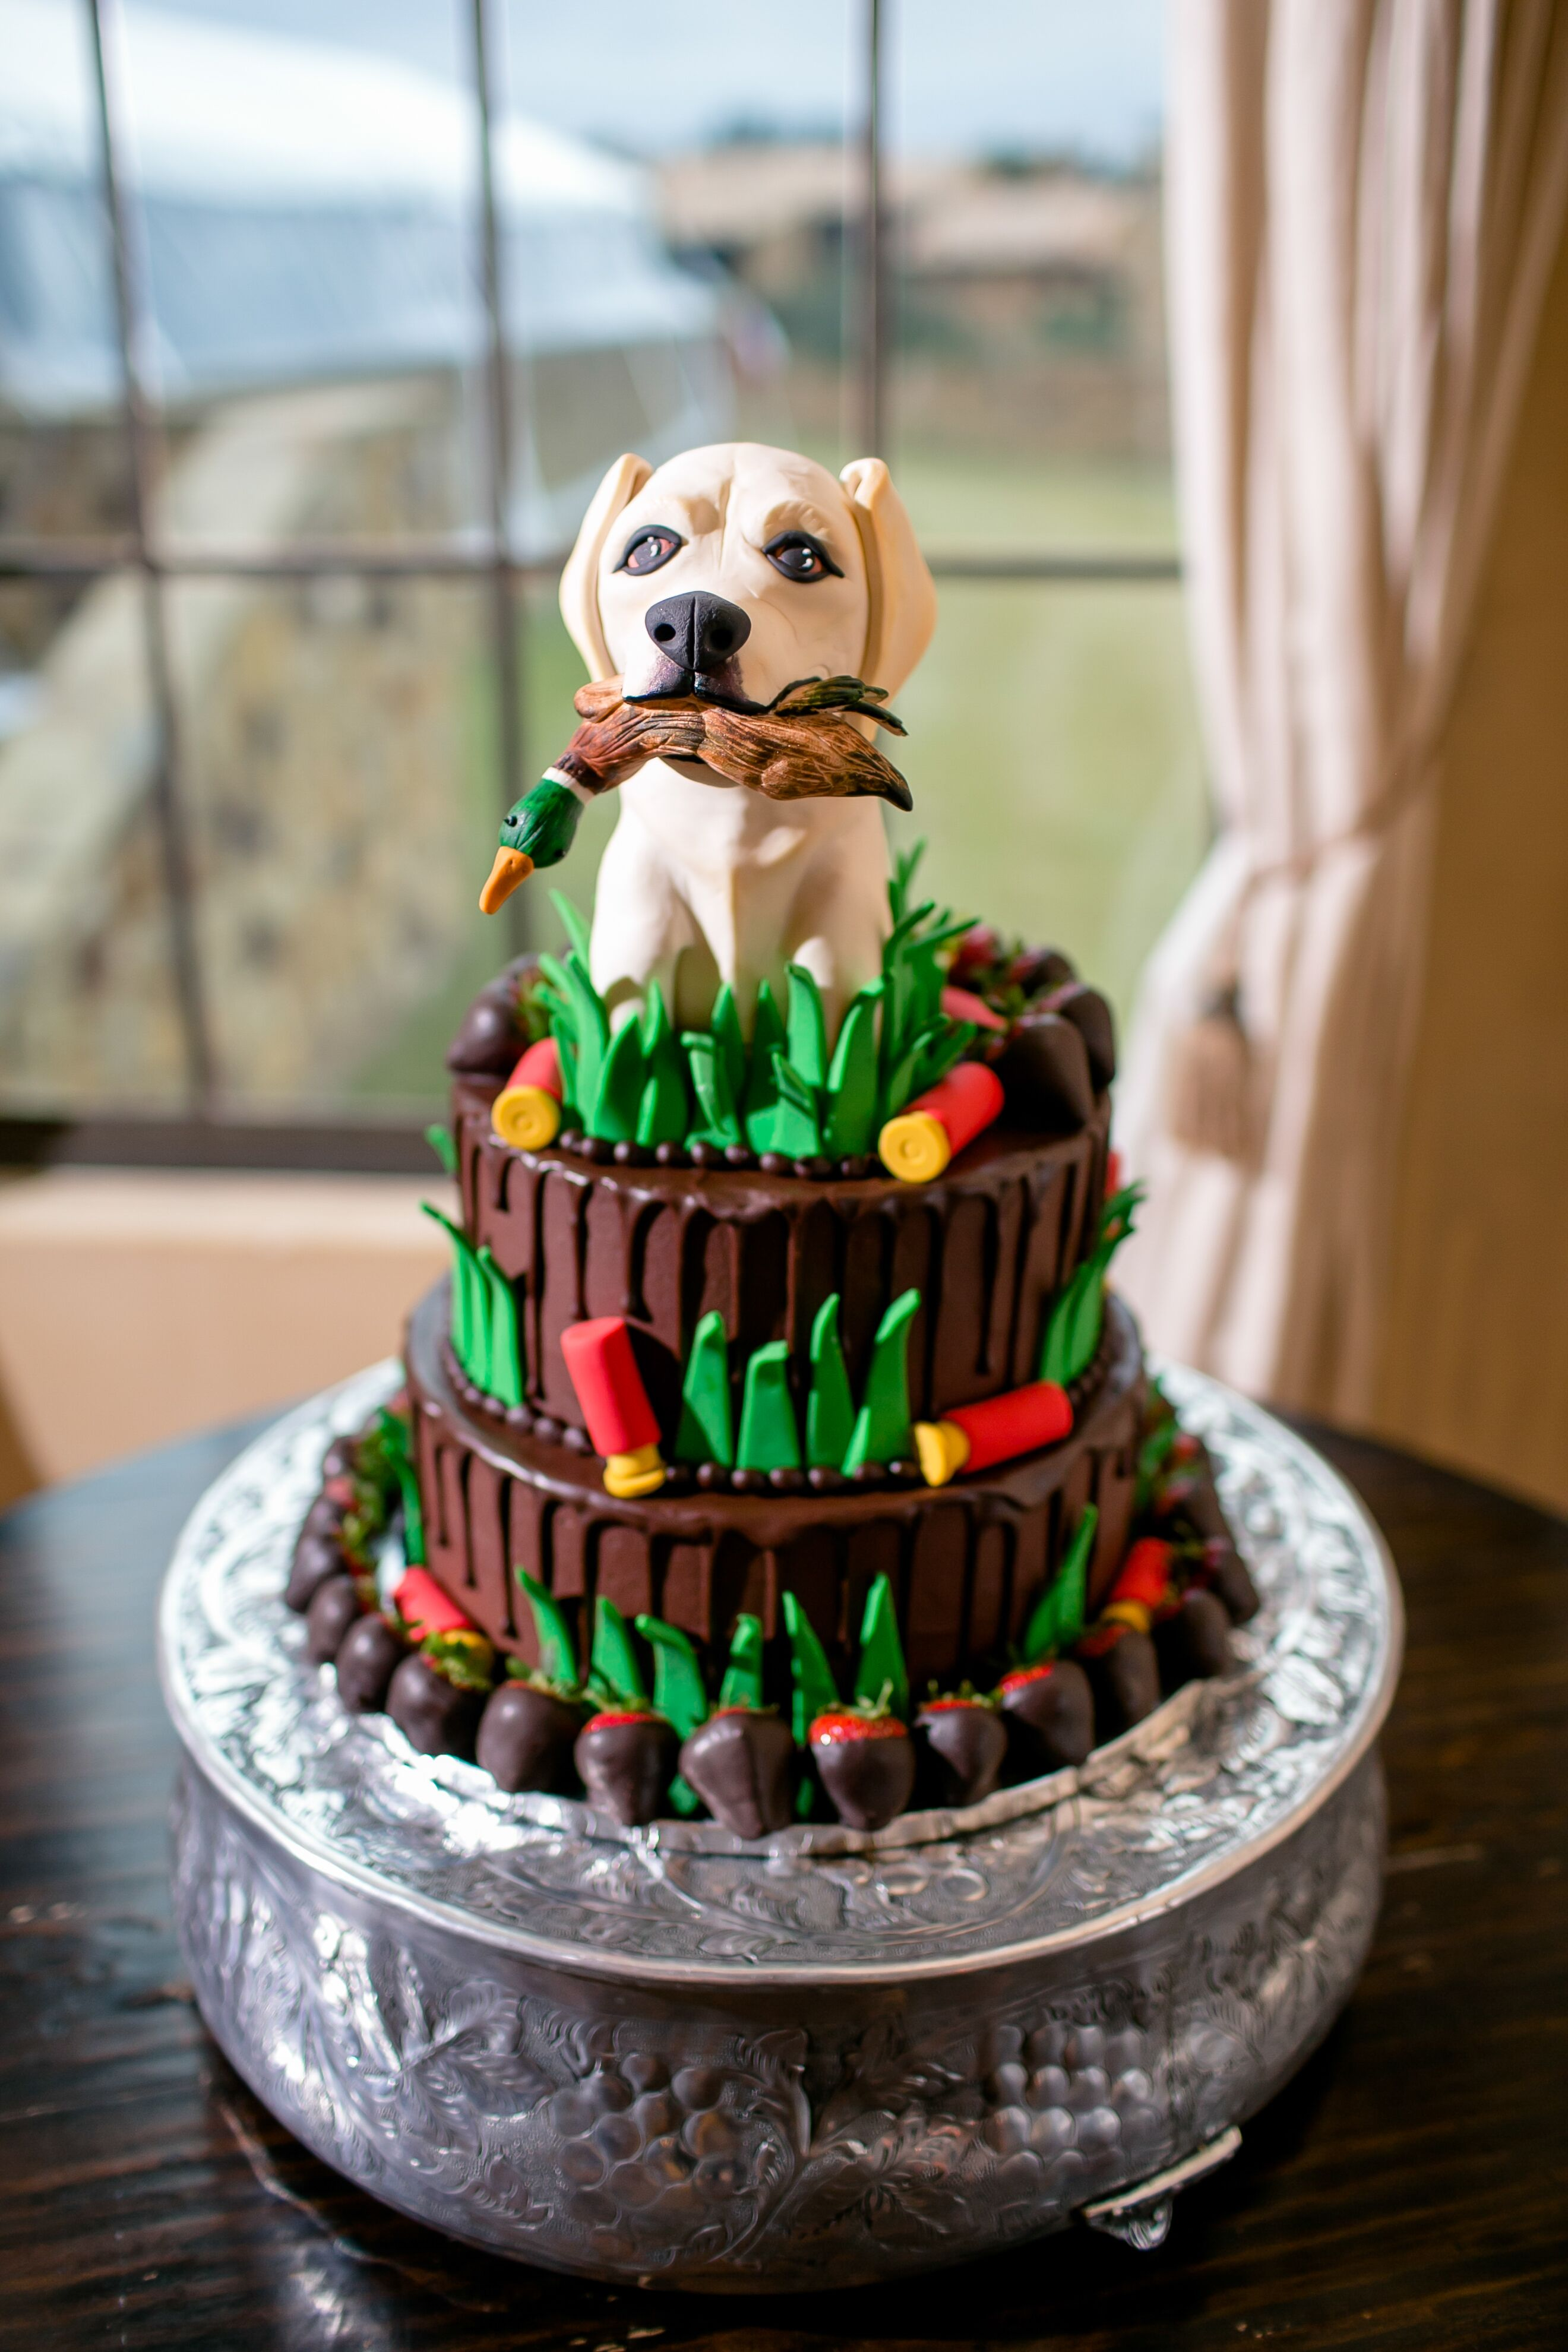 Whimsical Groom S Cake With Hunting Dog Topper